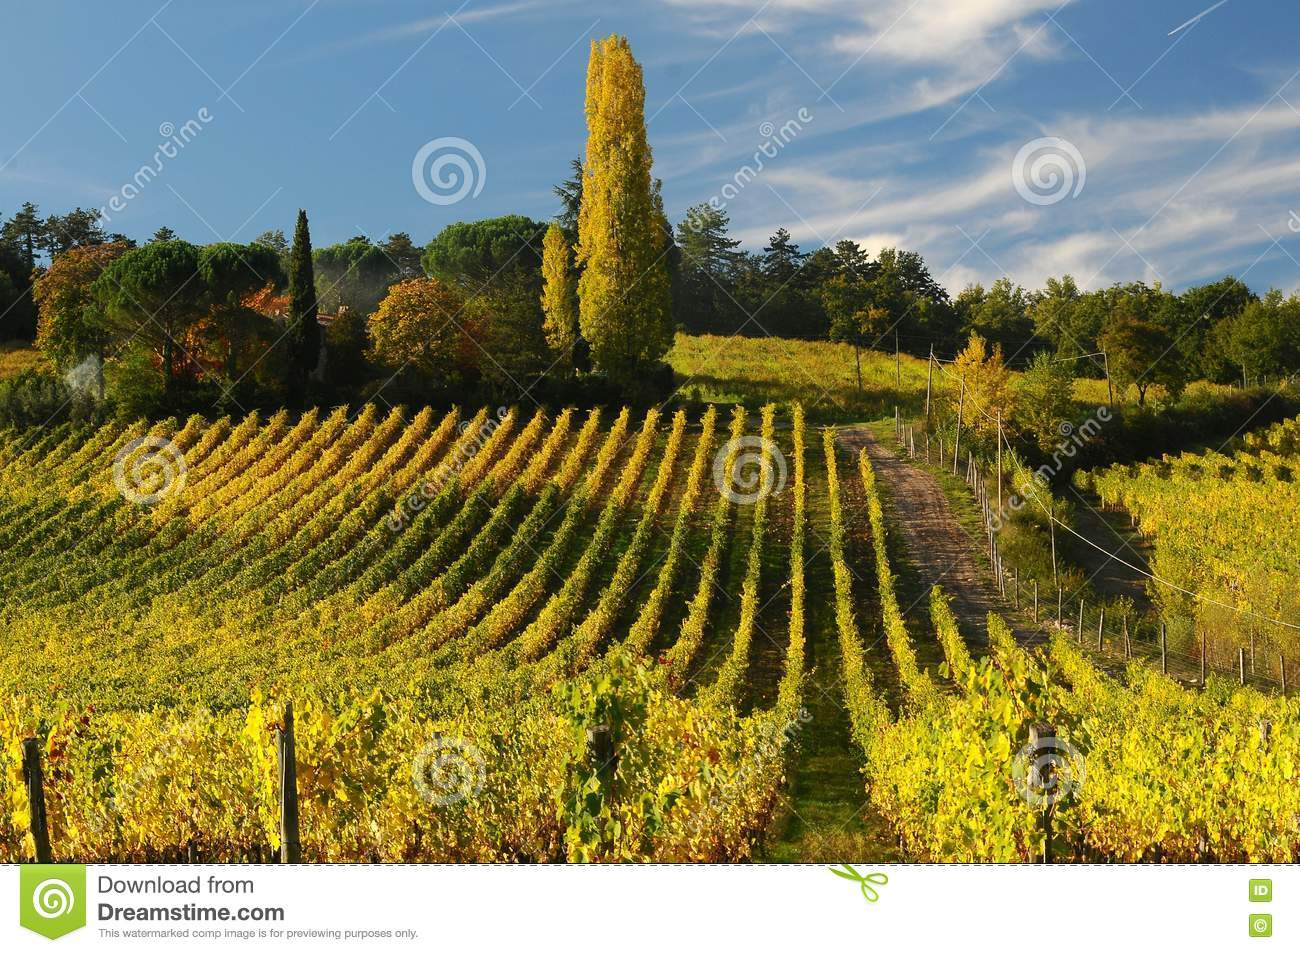 Wineyards i Tuscany, Chianti, Italien